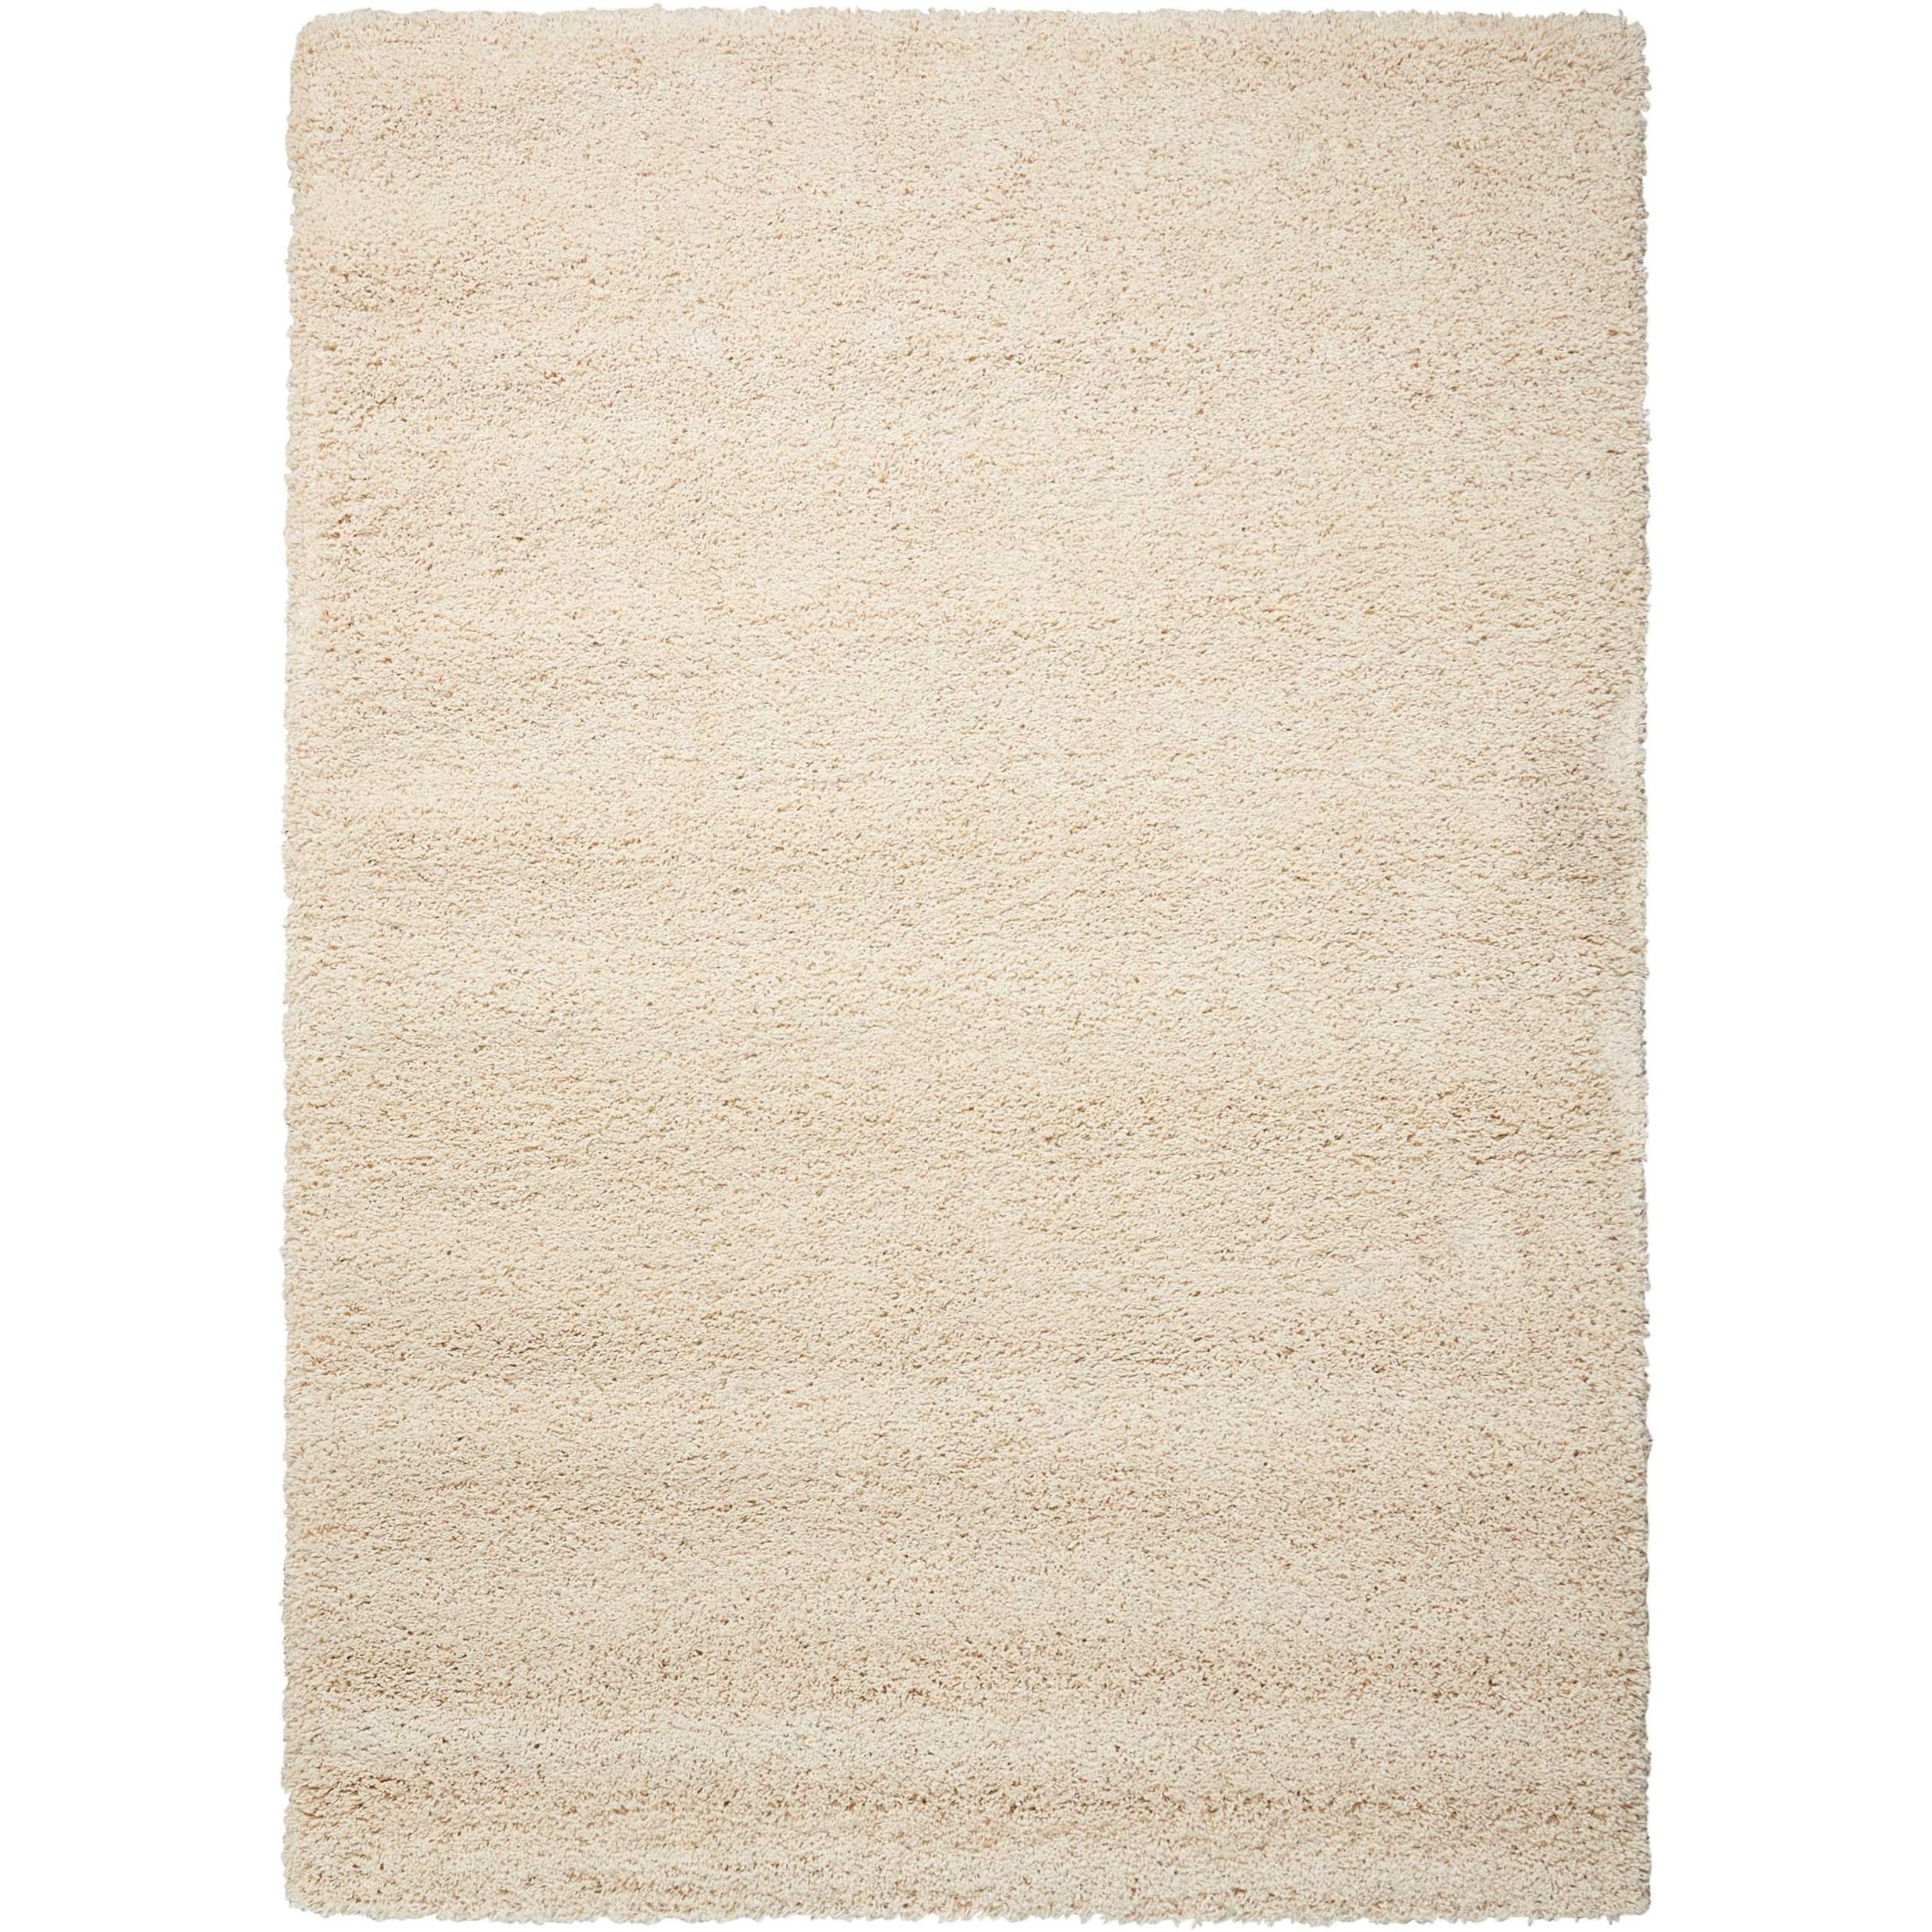 Amore Amore AMOR1 Beige 8'x11'   Rug by Nourison at Home Collections Furniture